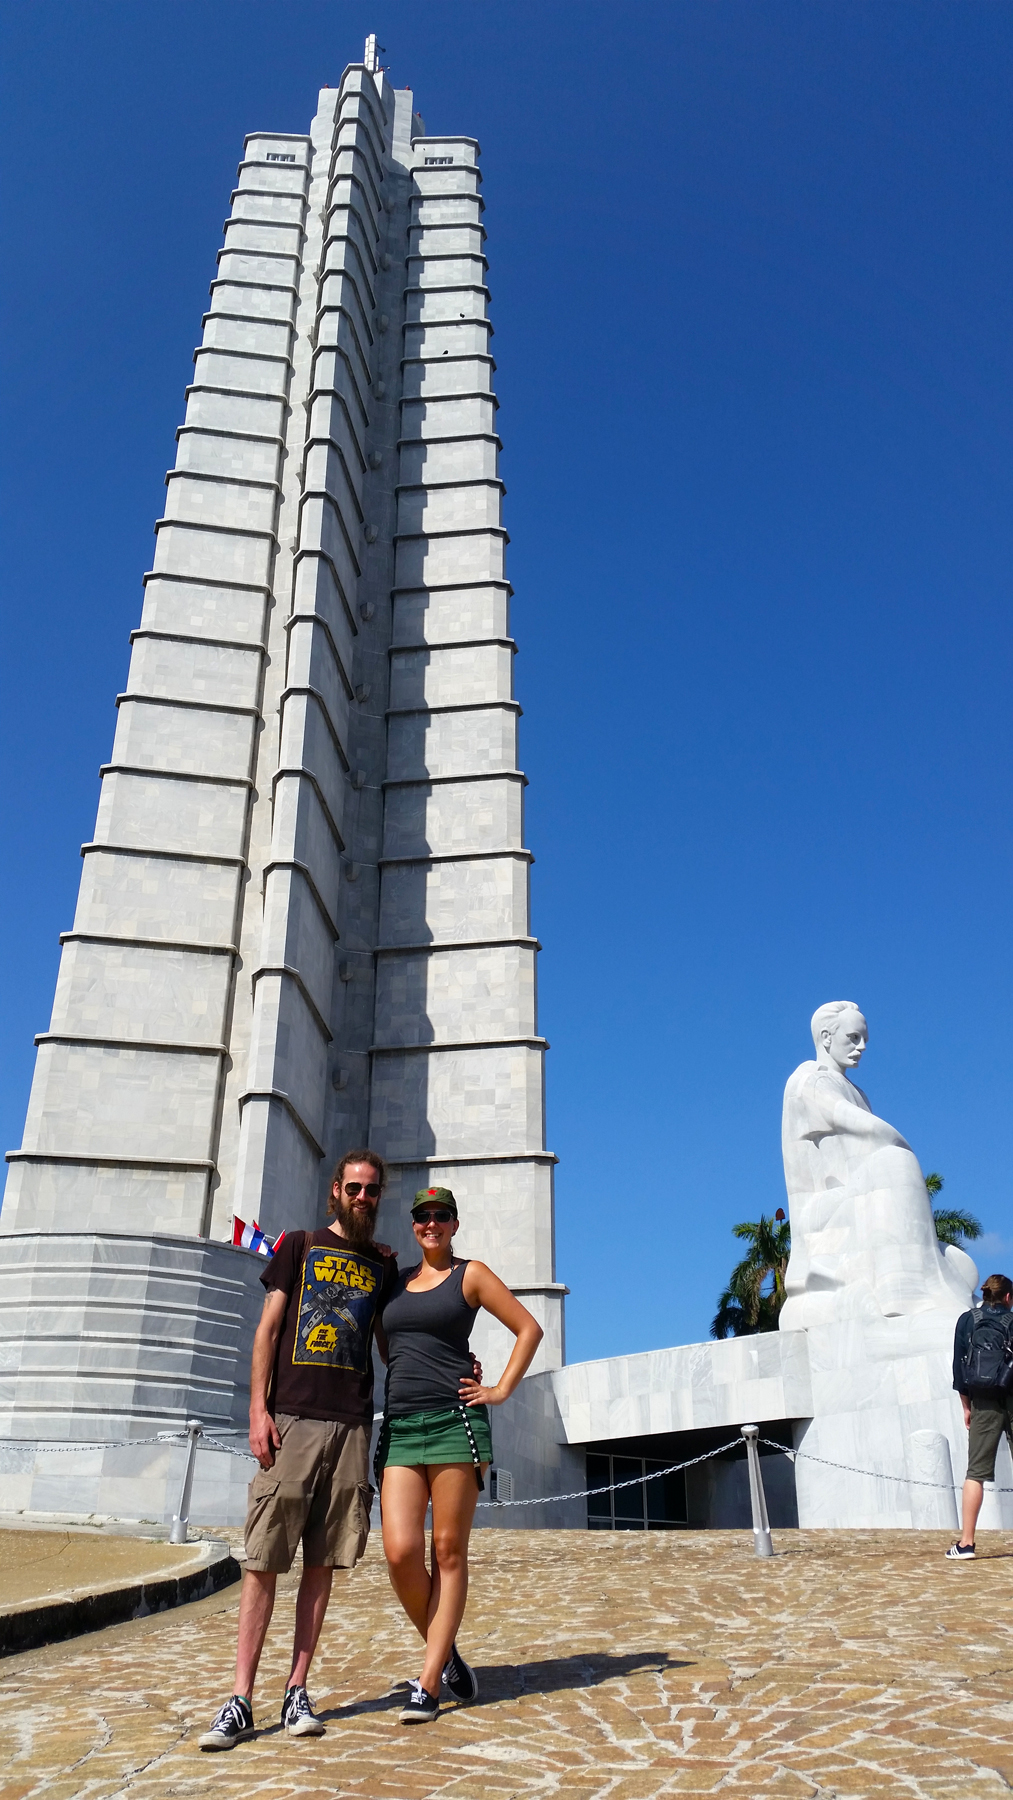 A photo taken in front of Jose Marti Memorial. The angle is a bit from the bottom so the memorial height looks even more imposing.